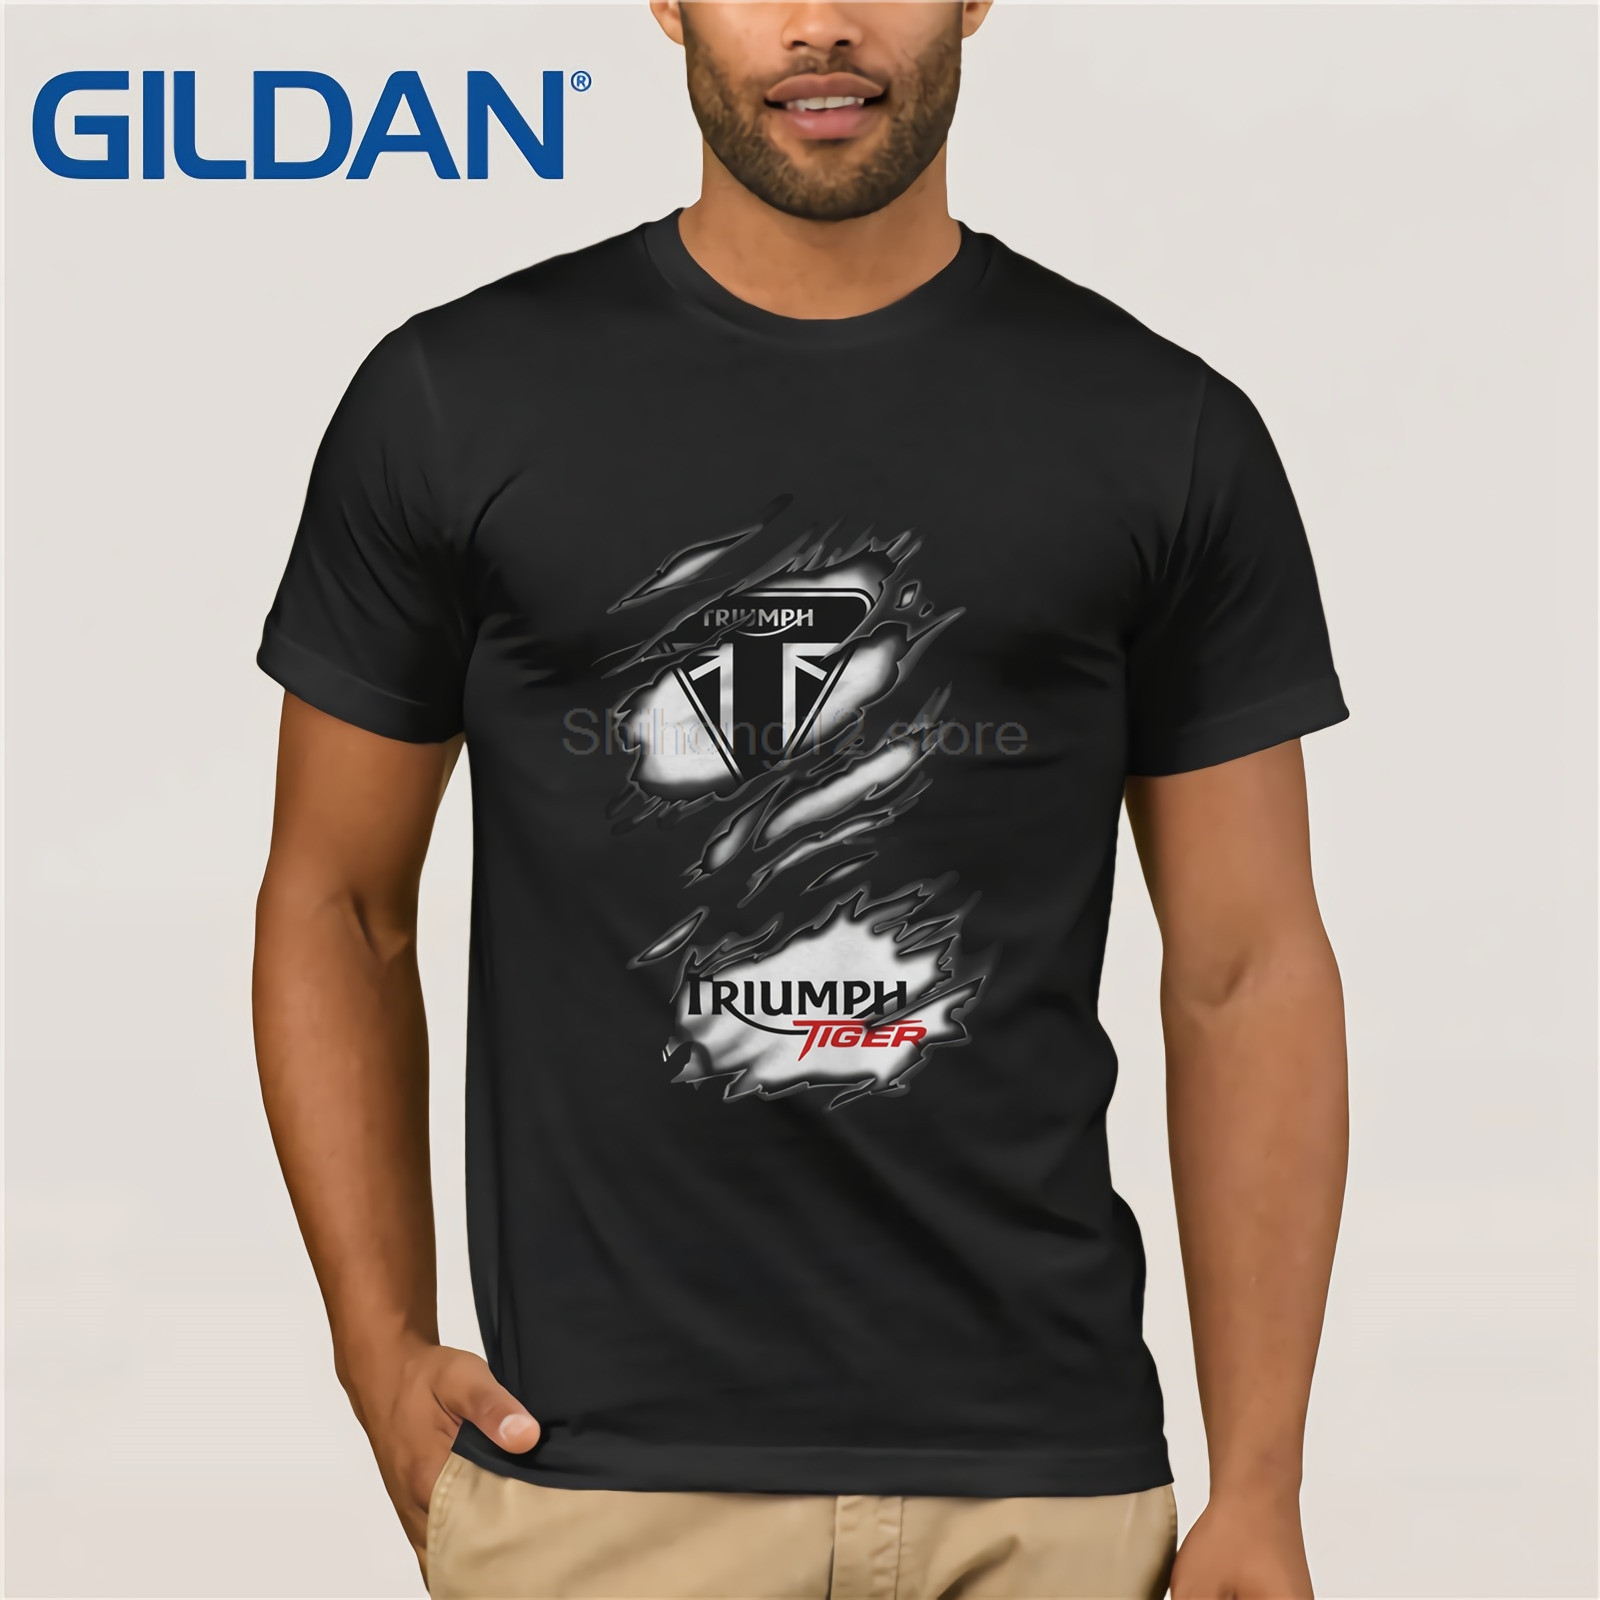 Gildan   t     shirt   2019 Fashion men   t  -  shirt   gildan RA TRIUMPH TIGER